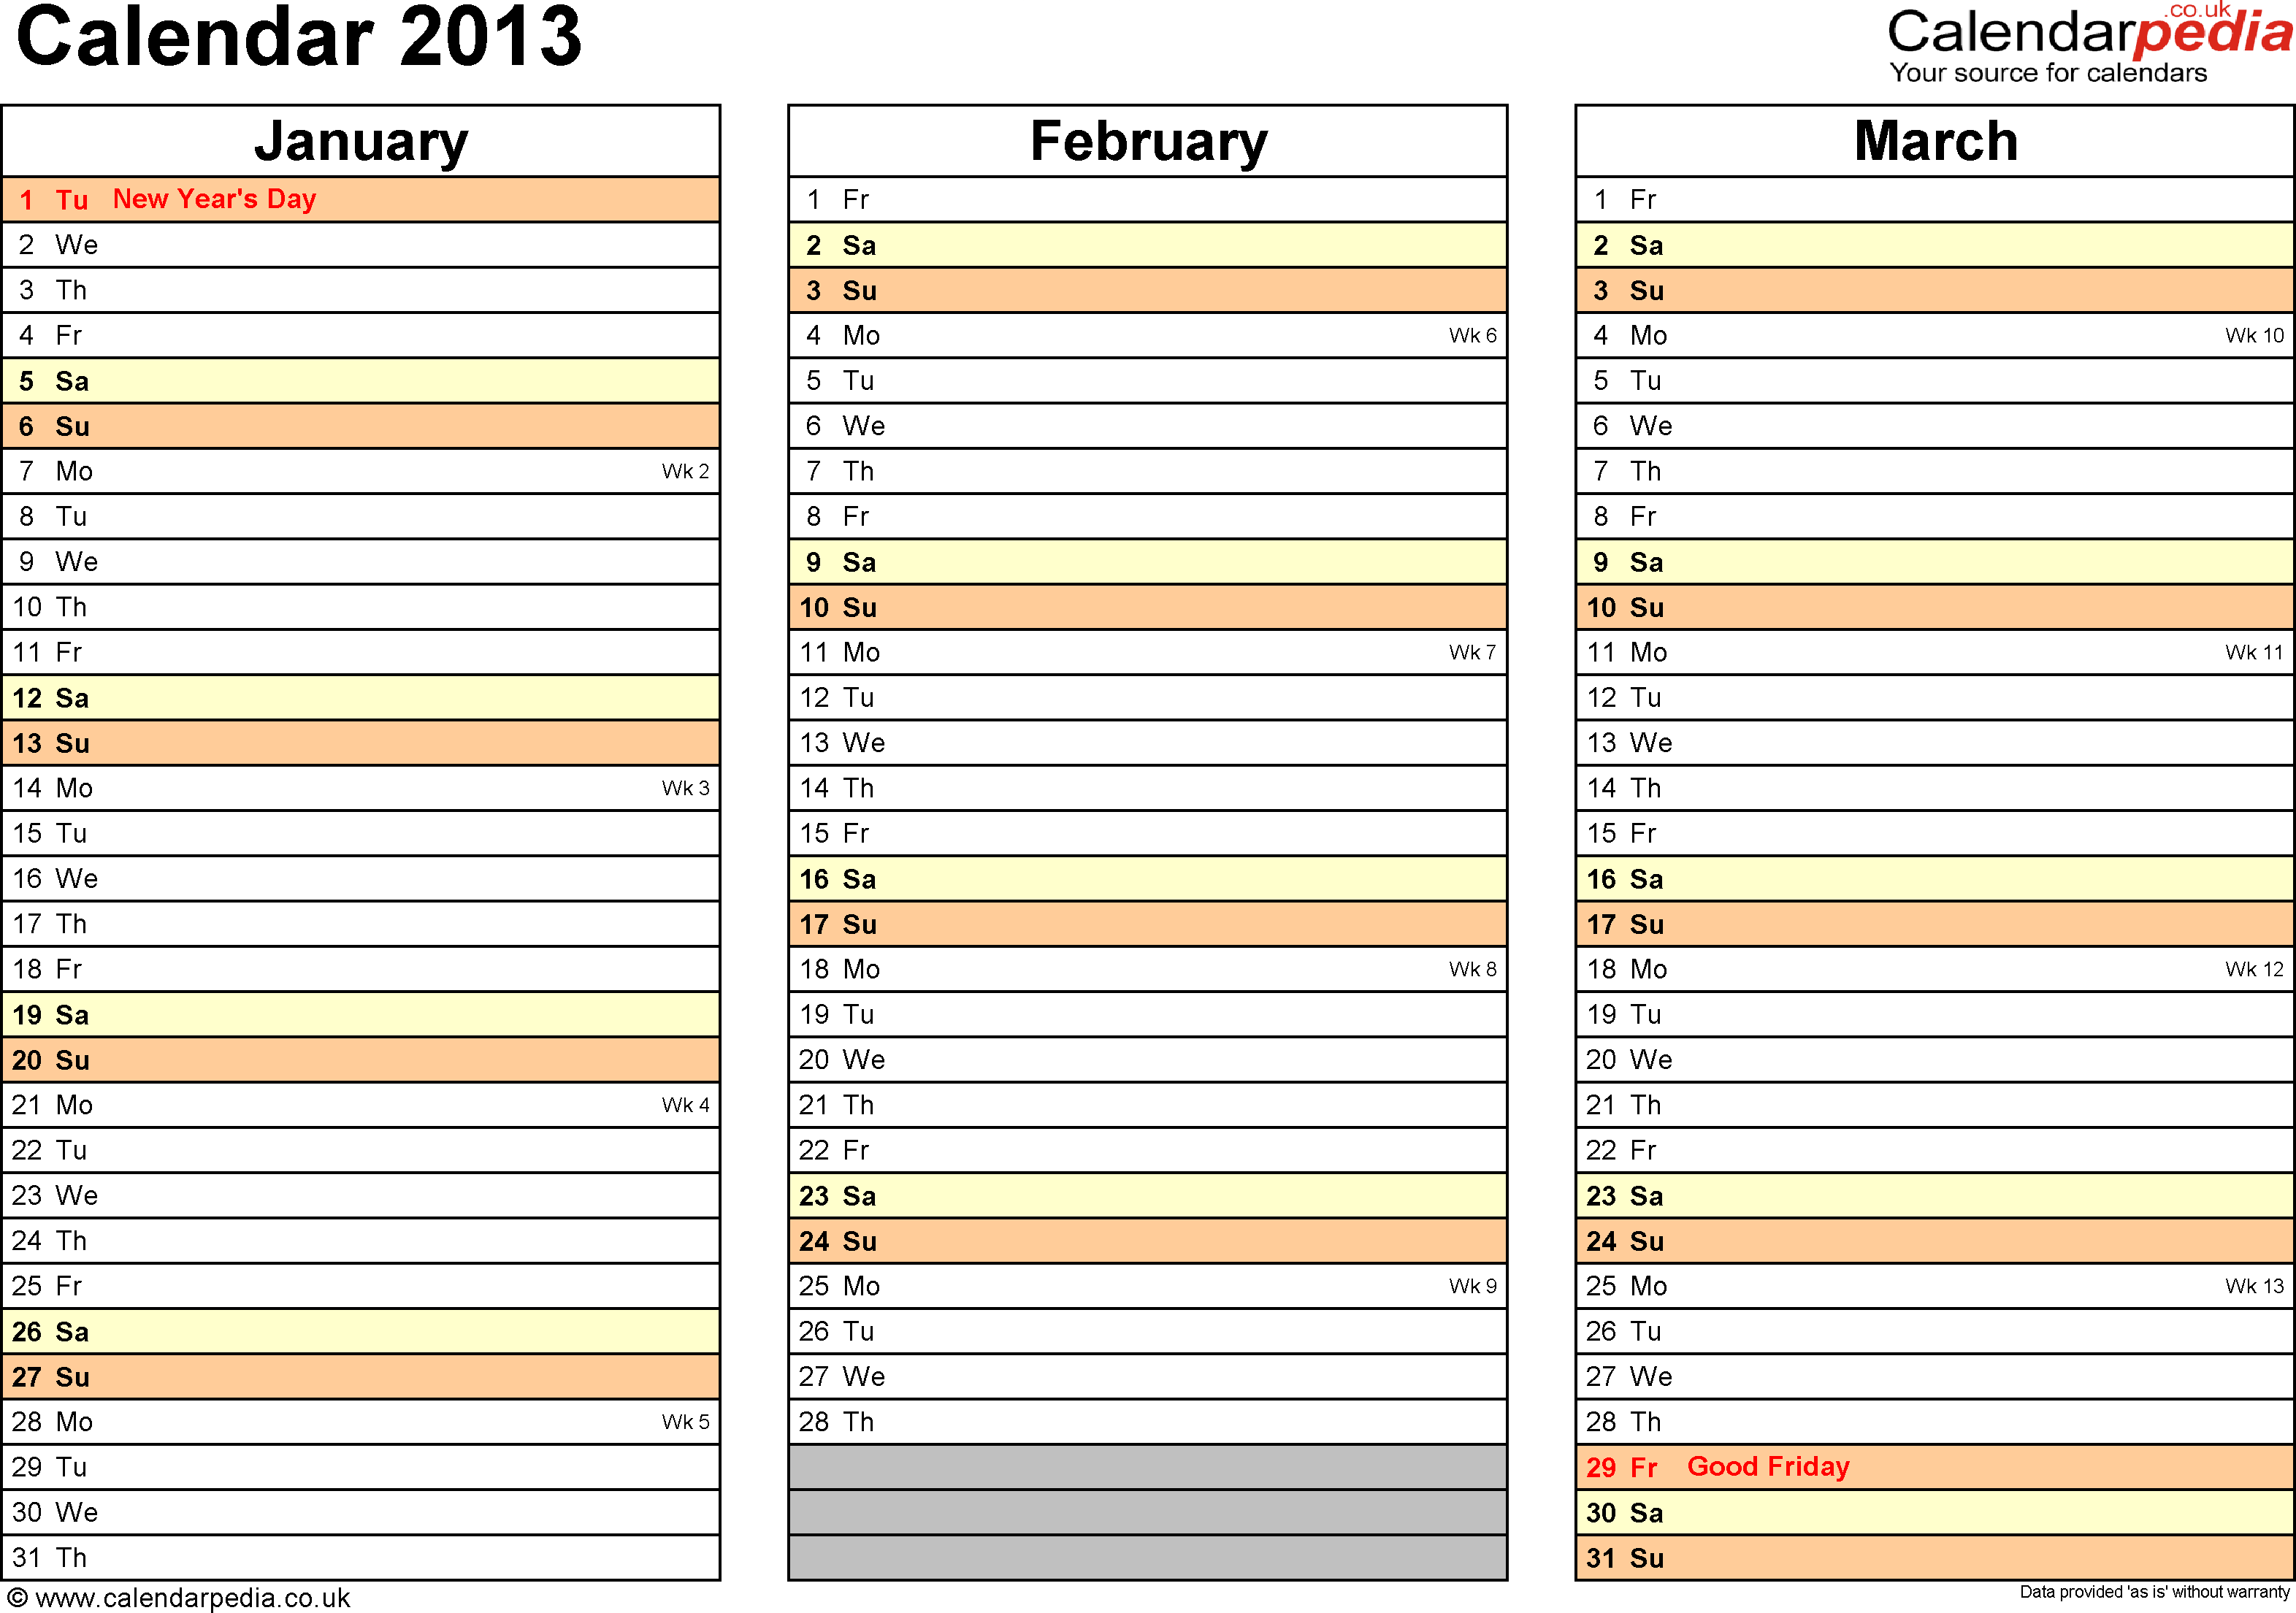 Excel Calendar 2013 UK - 12 printable templates (xlsx, free)